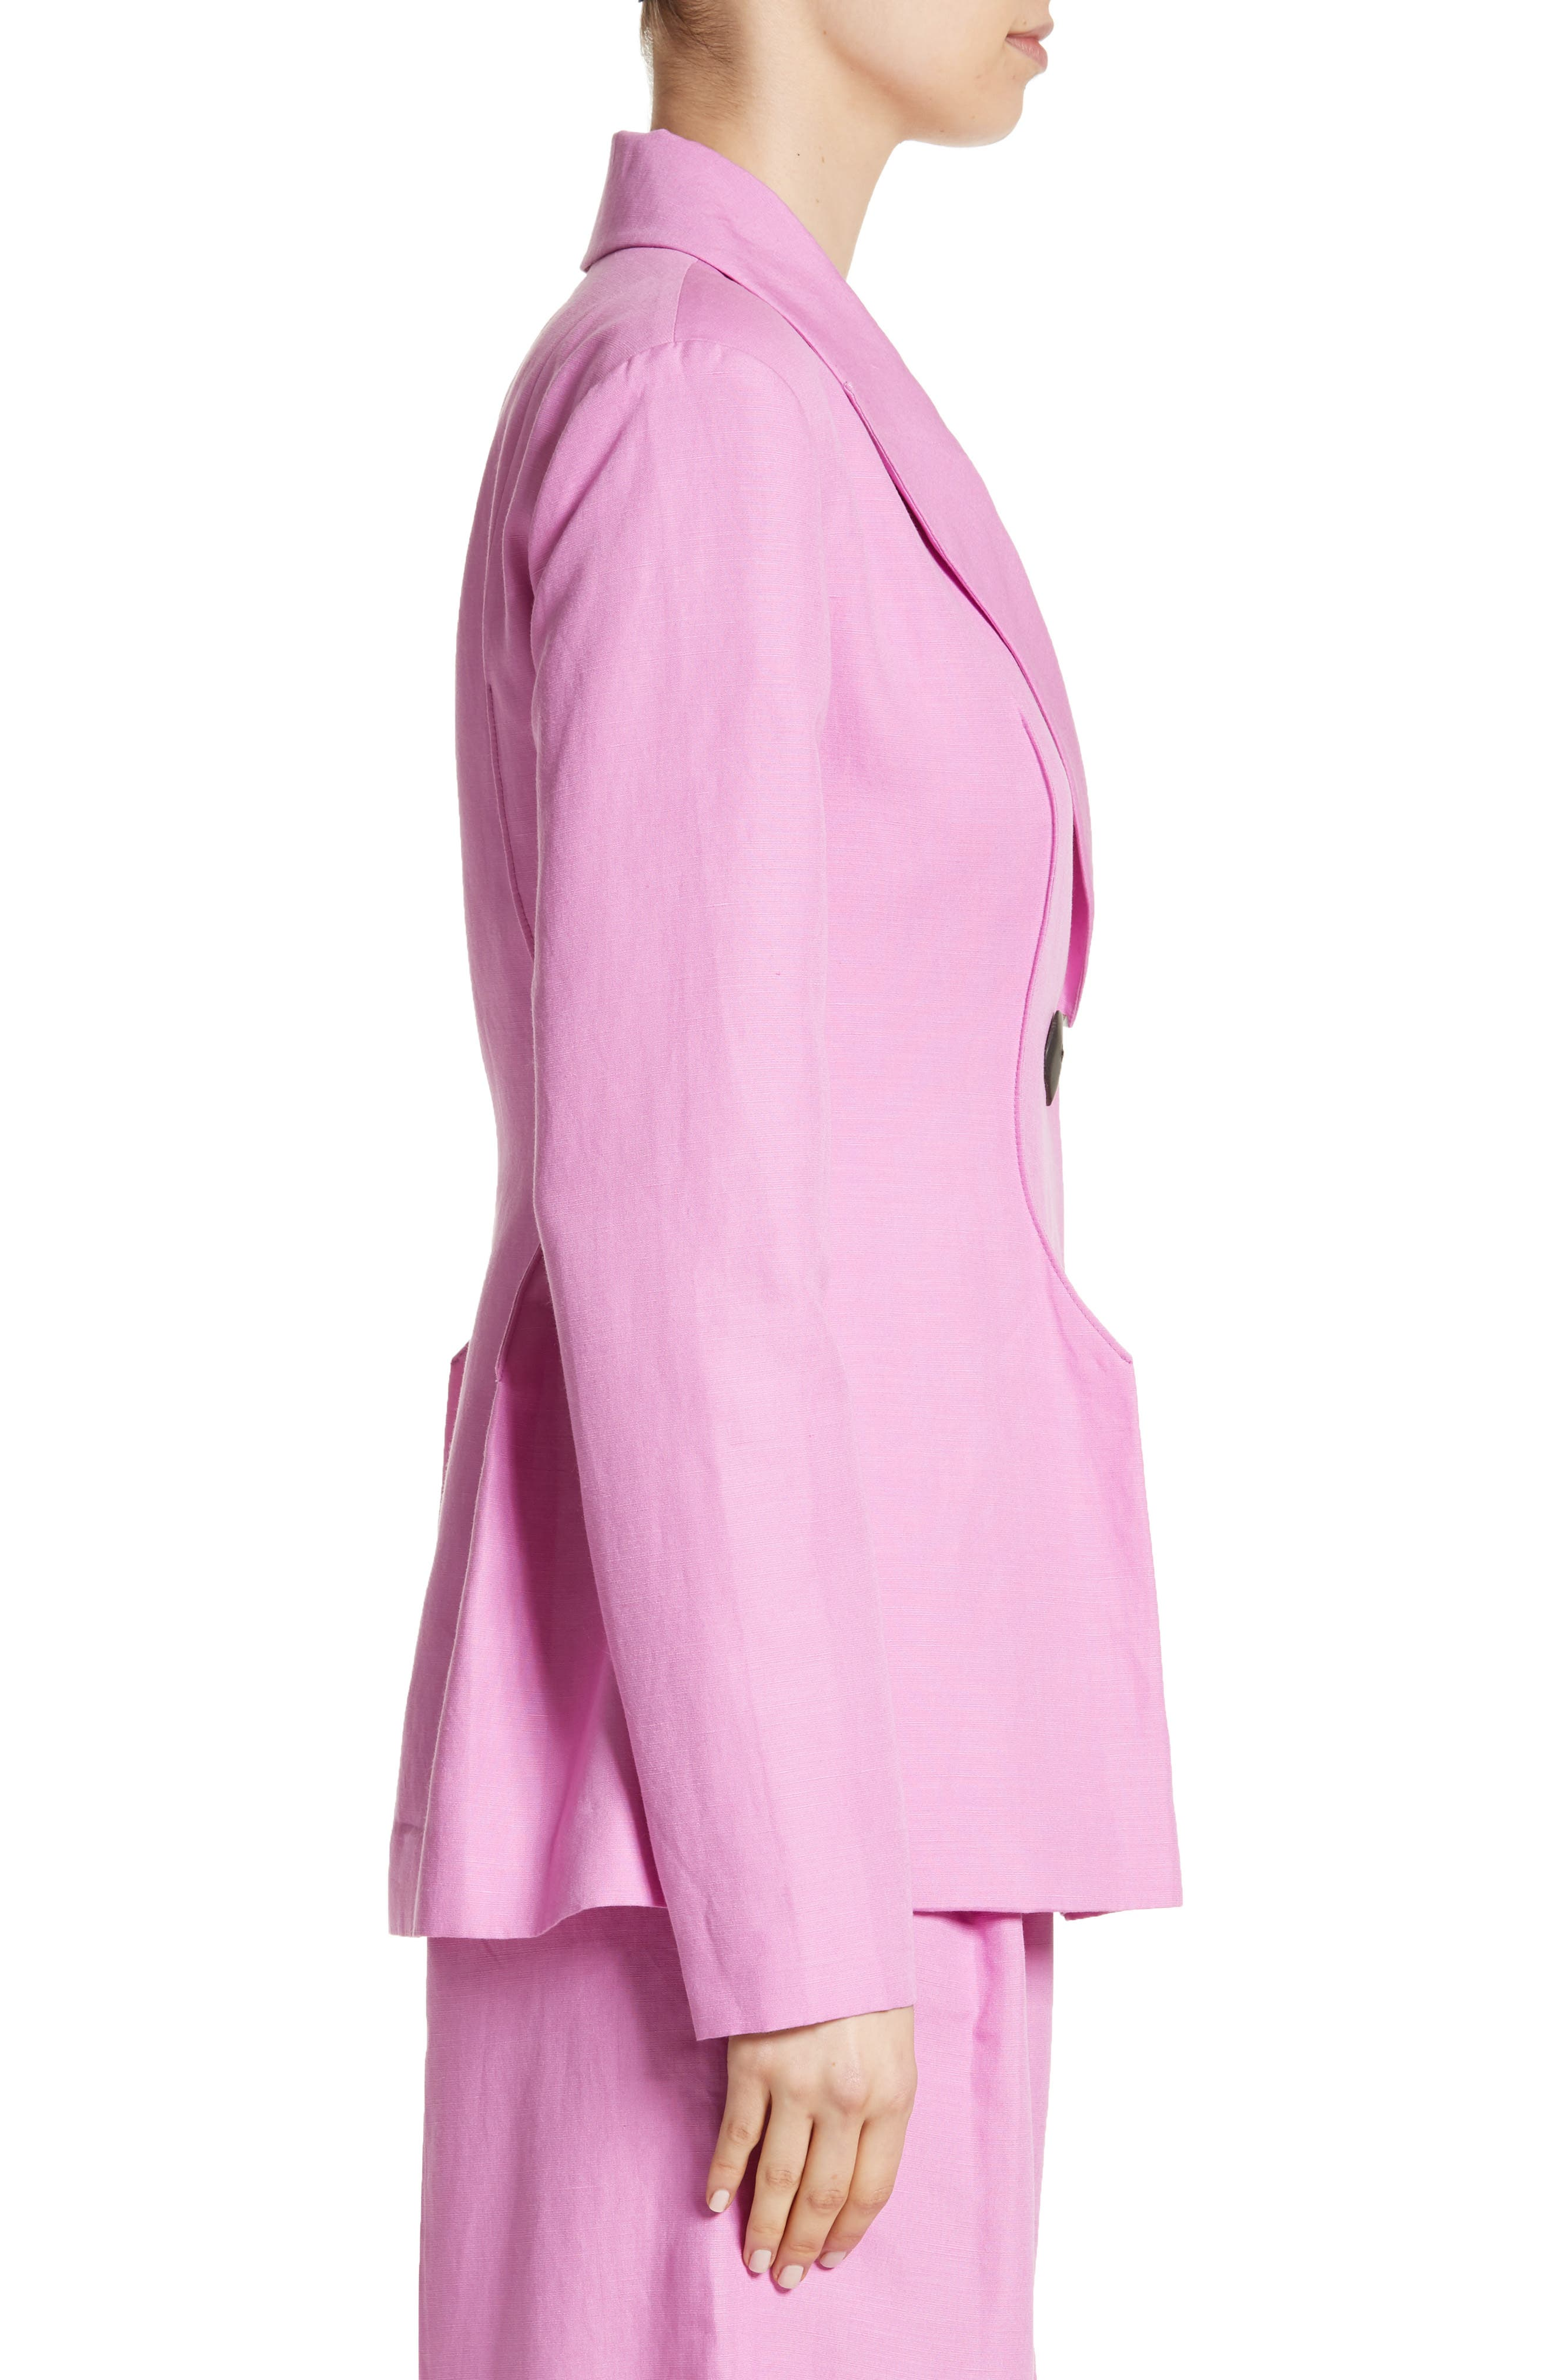 Double Breasted Jacket,                             Alternate thumbnail 3, color,                             LINEN TAFFY PINK